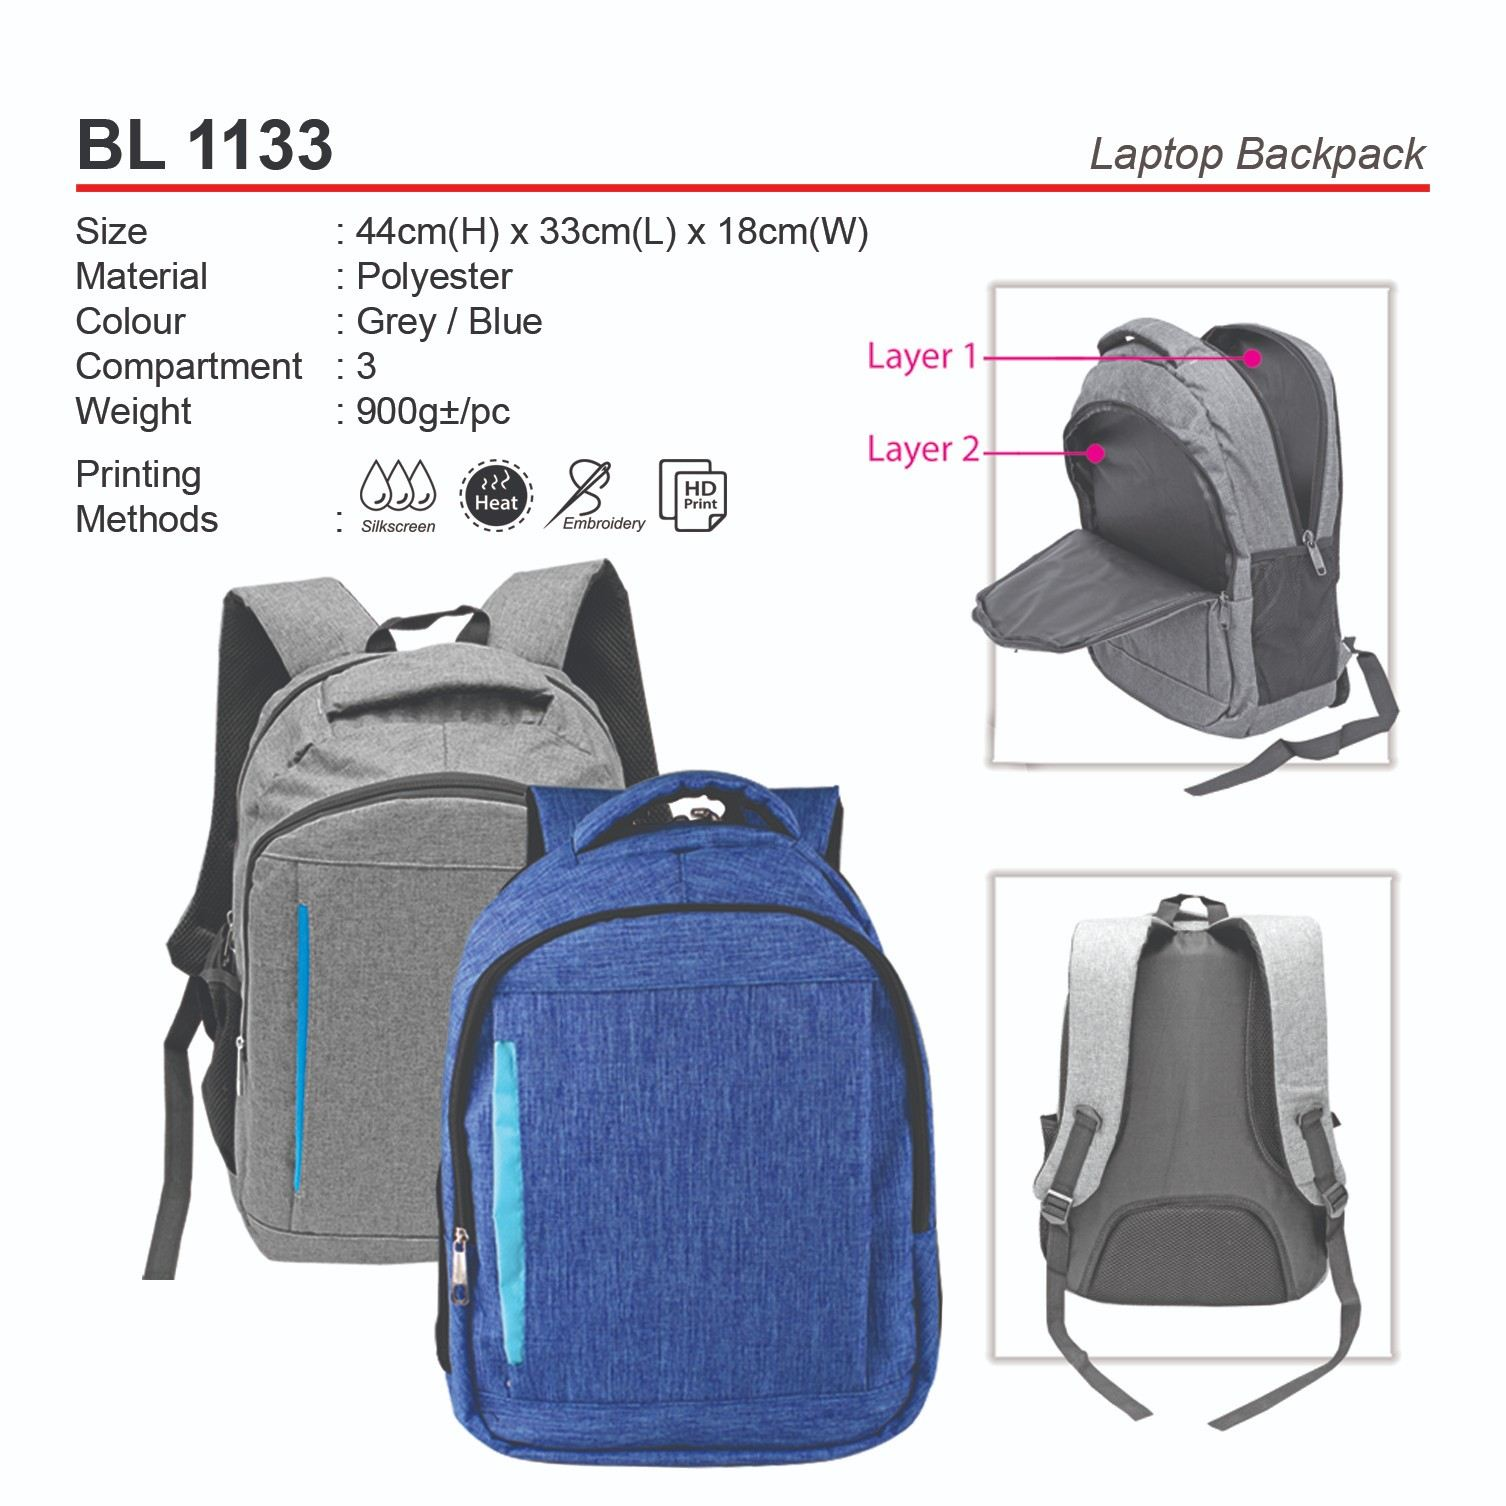 BL1133 Laptop Backpack (A)